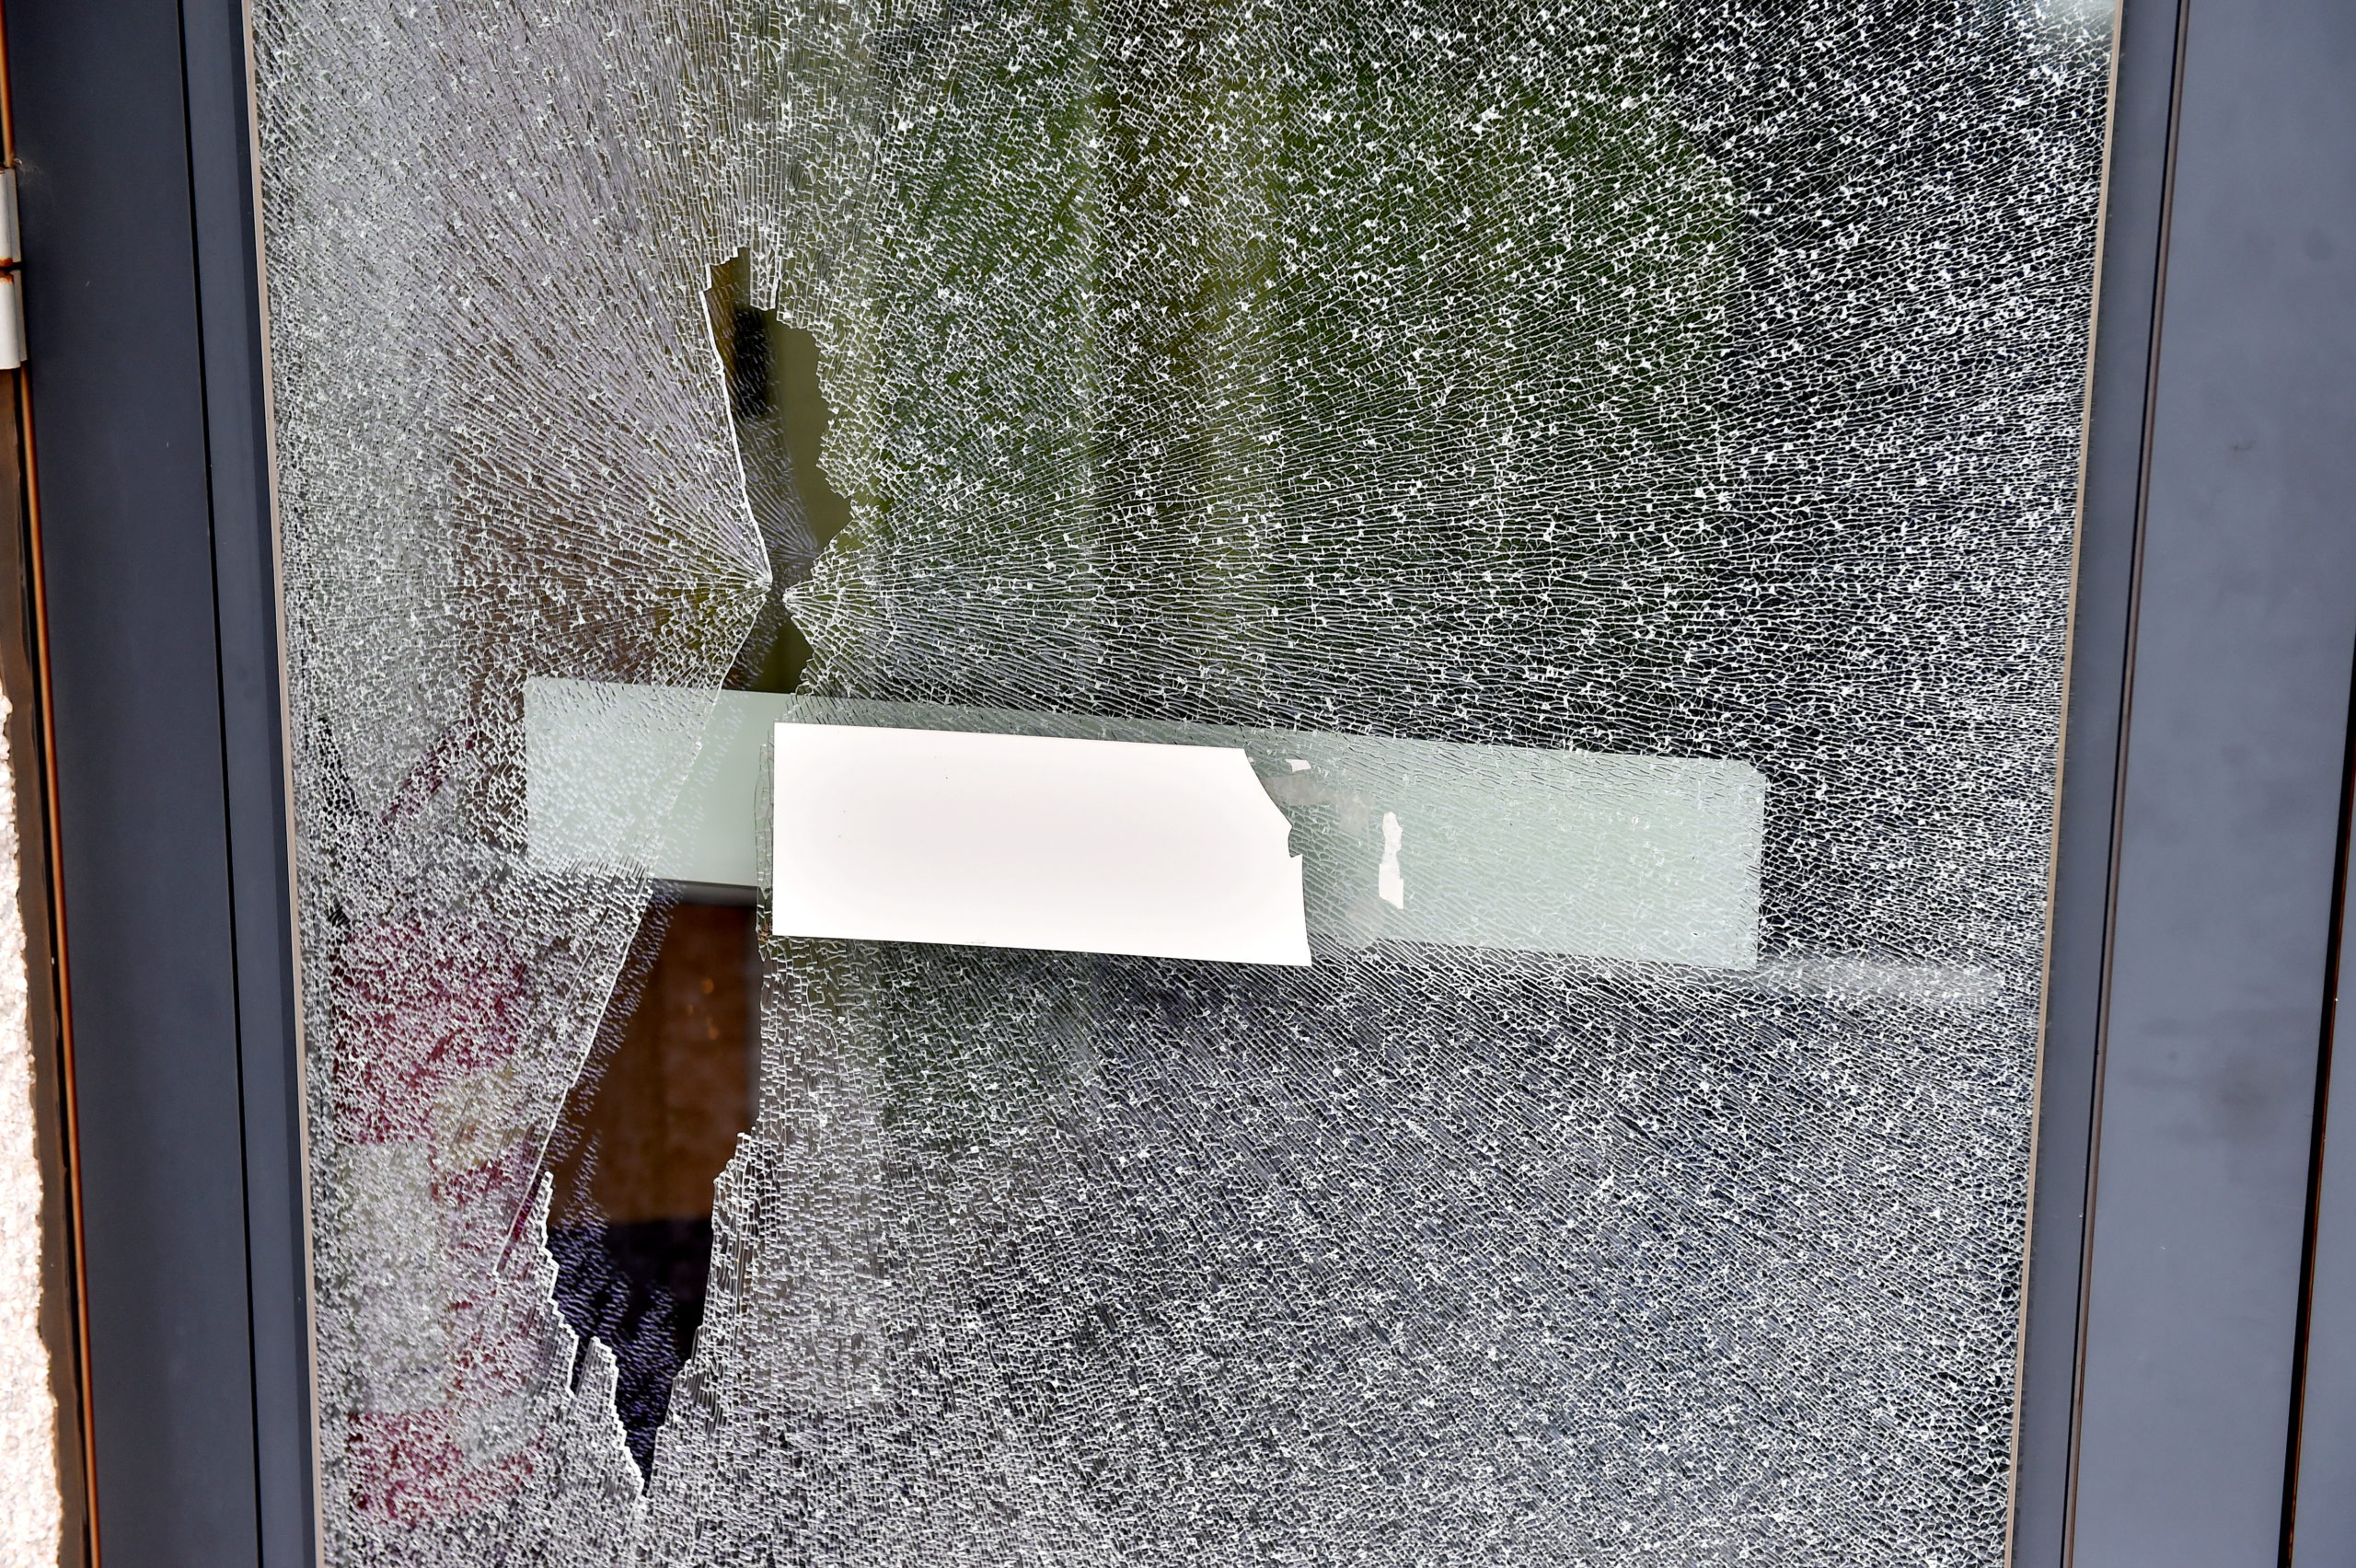 Cove Bay medical centre was vandalised